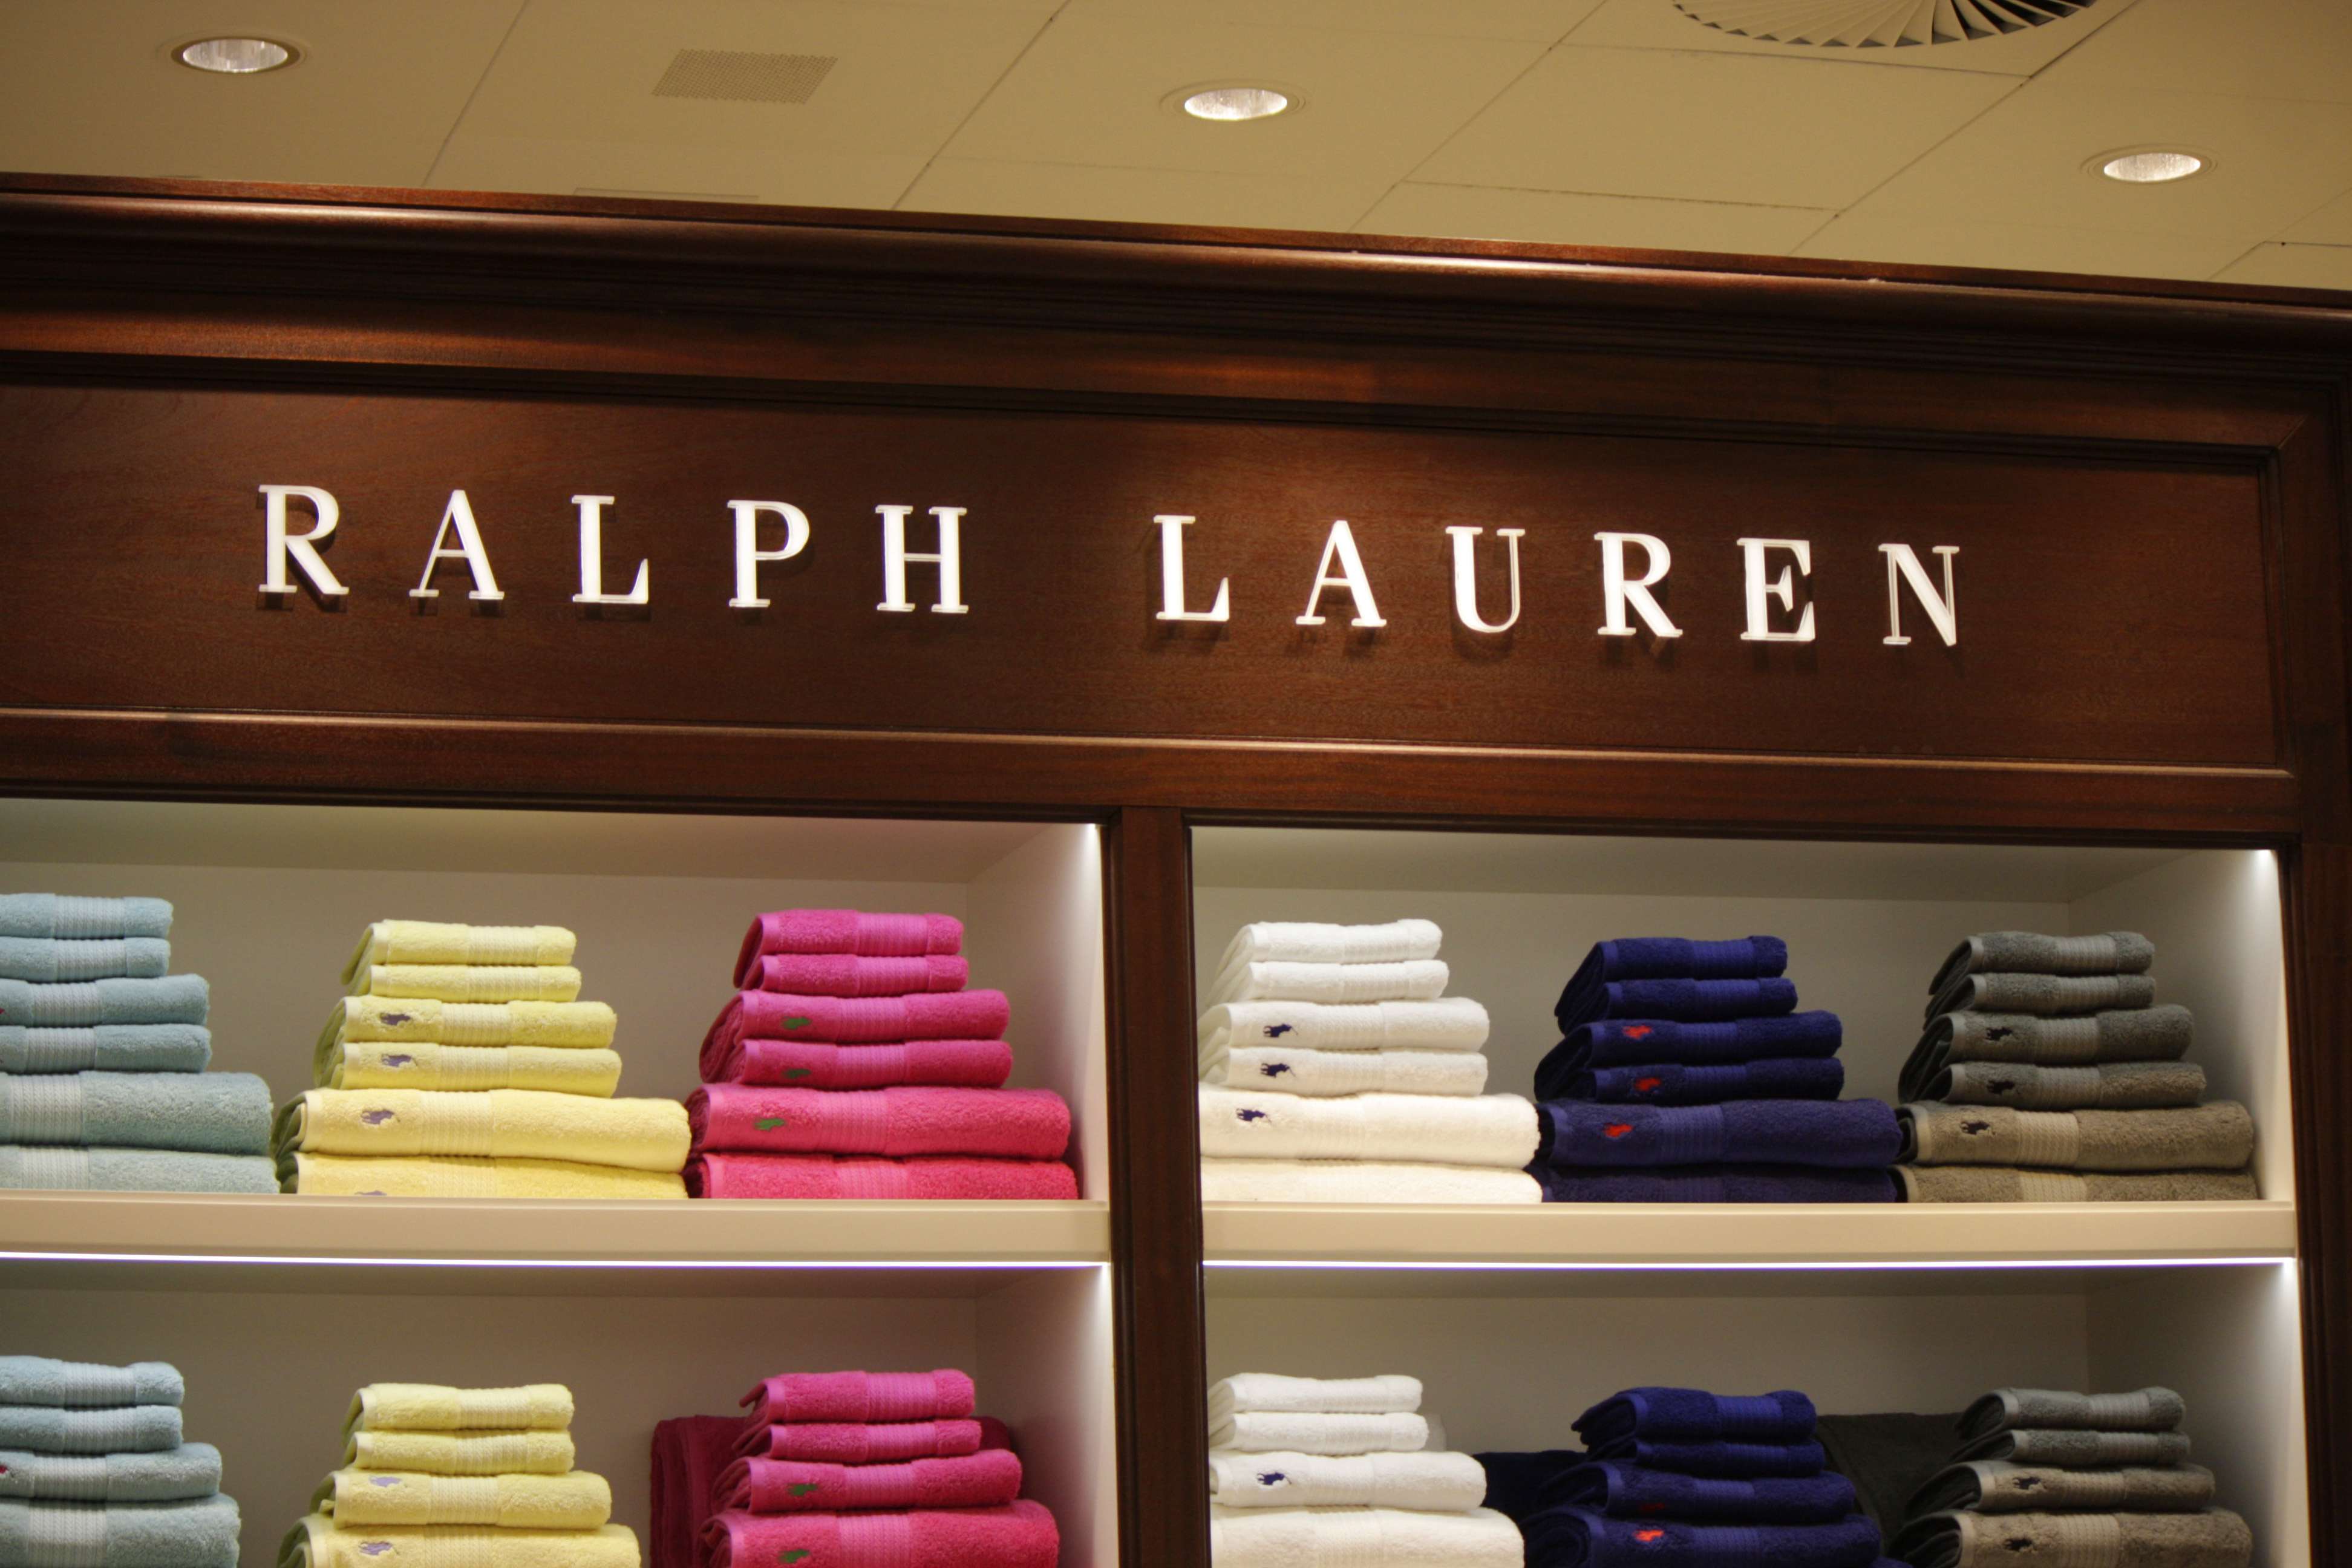 Ralph Lauren's new made-to-order Polo service misses the mark